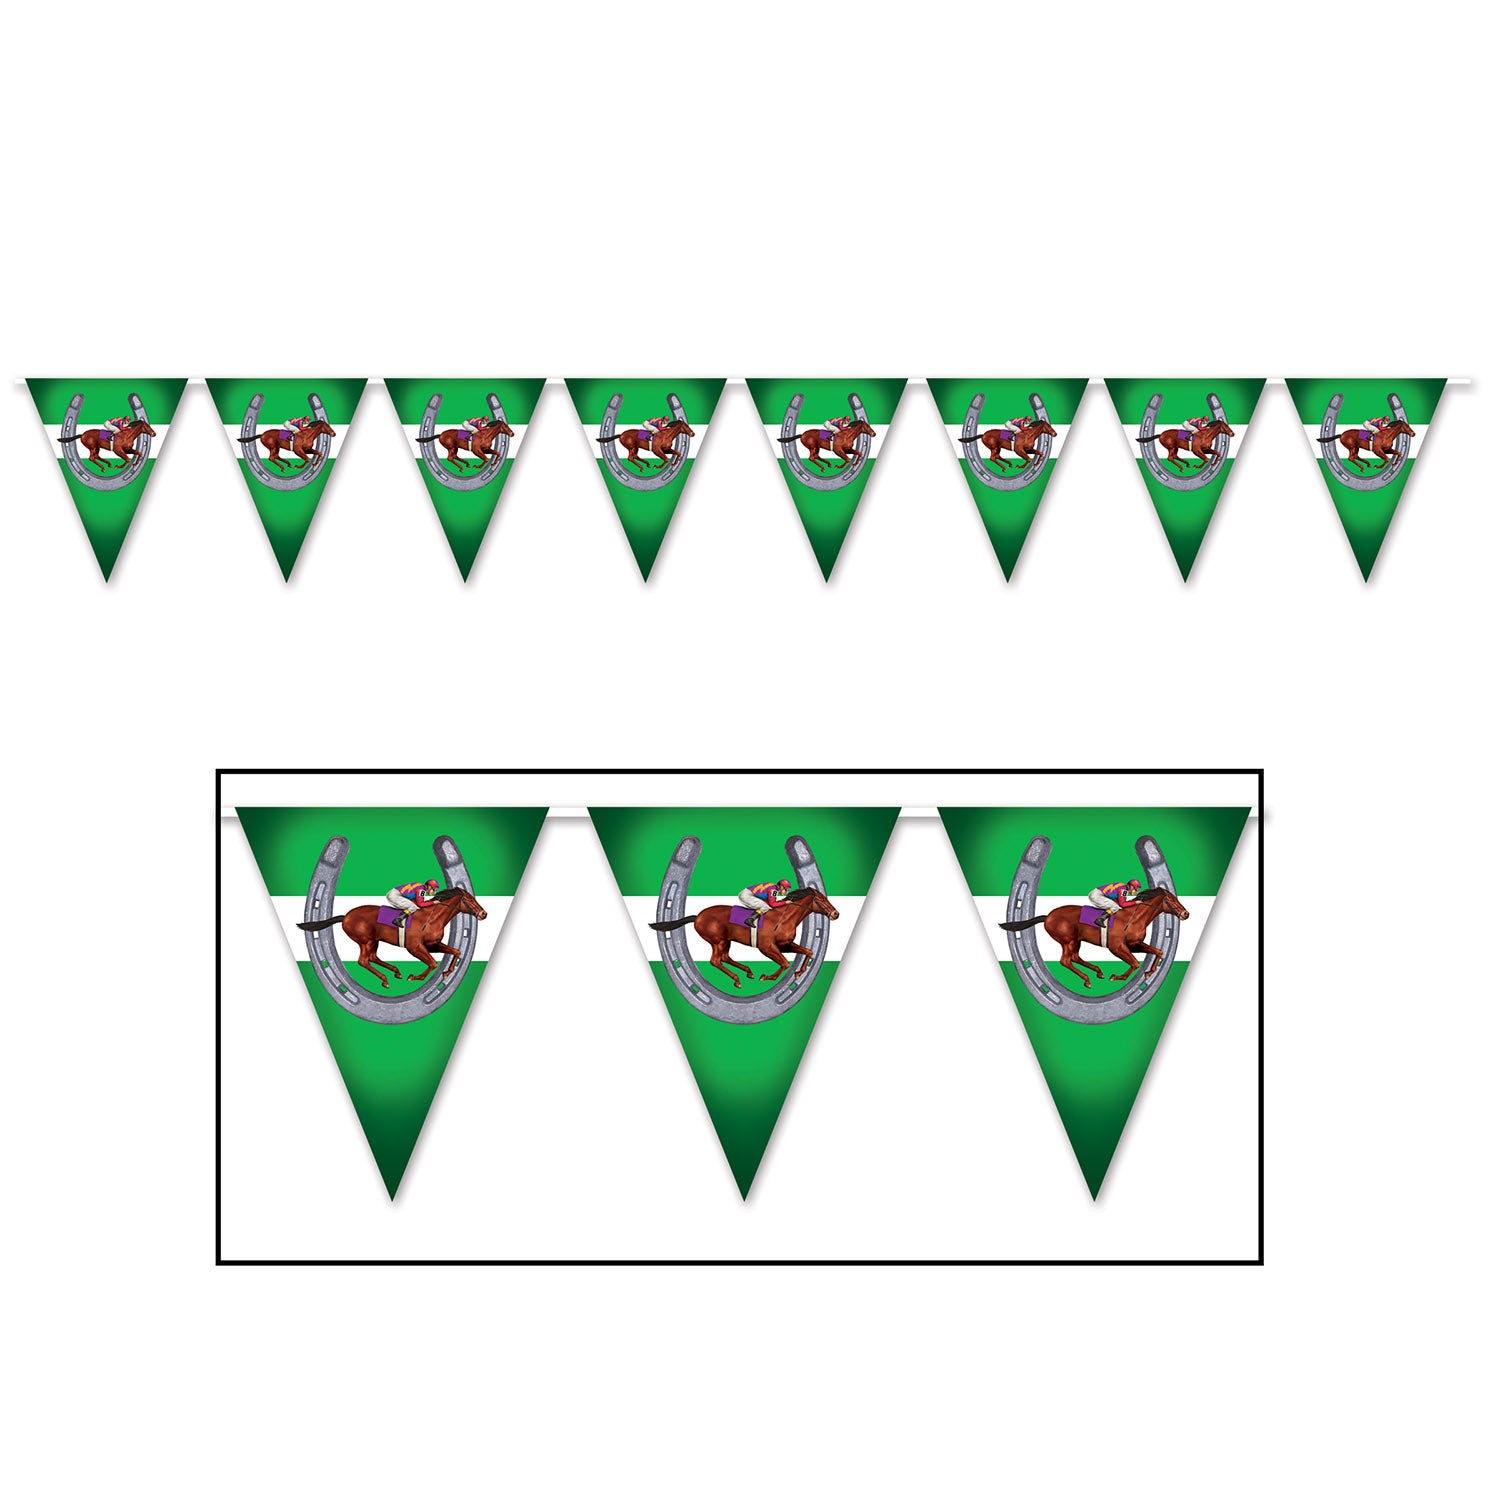 Horse Racing Pennant Banner by Beistle - Derby Day Theme Decorations